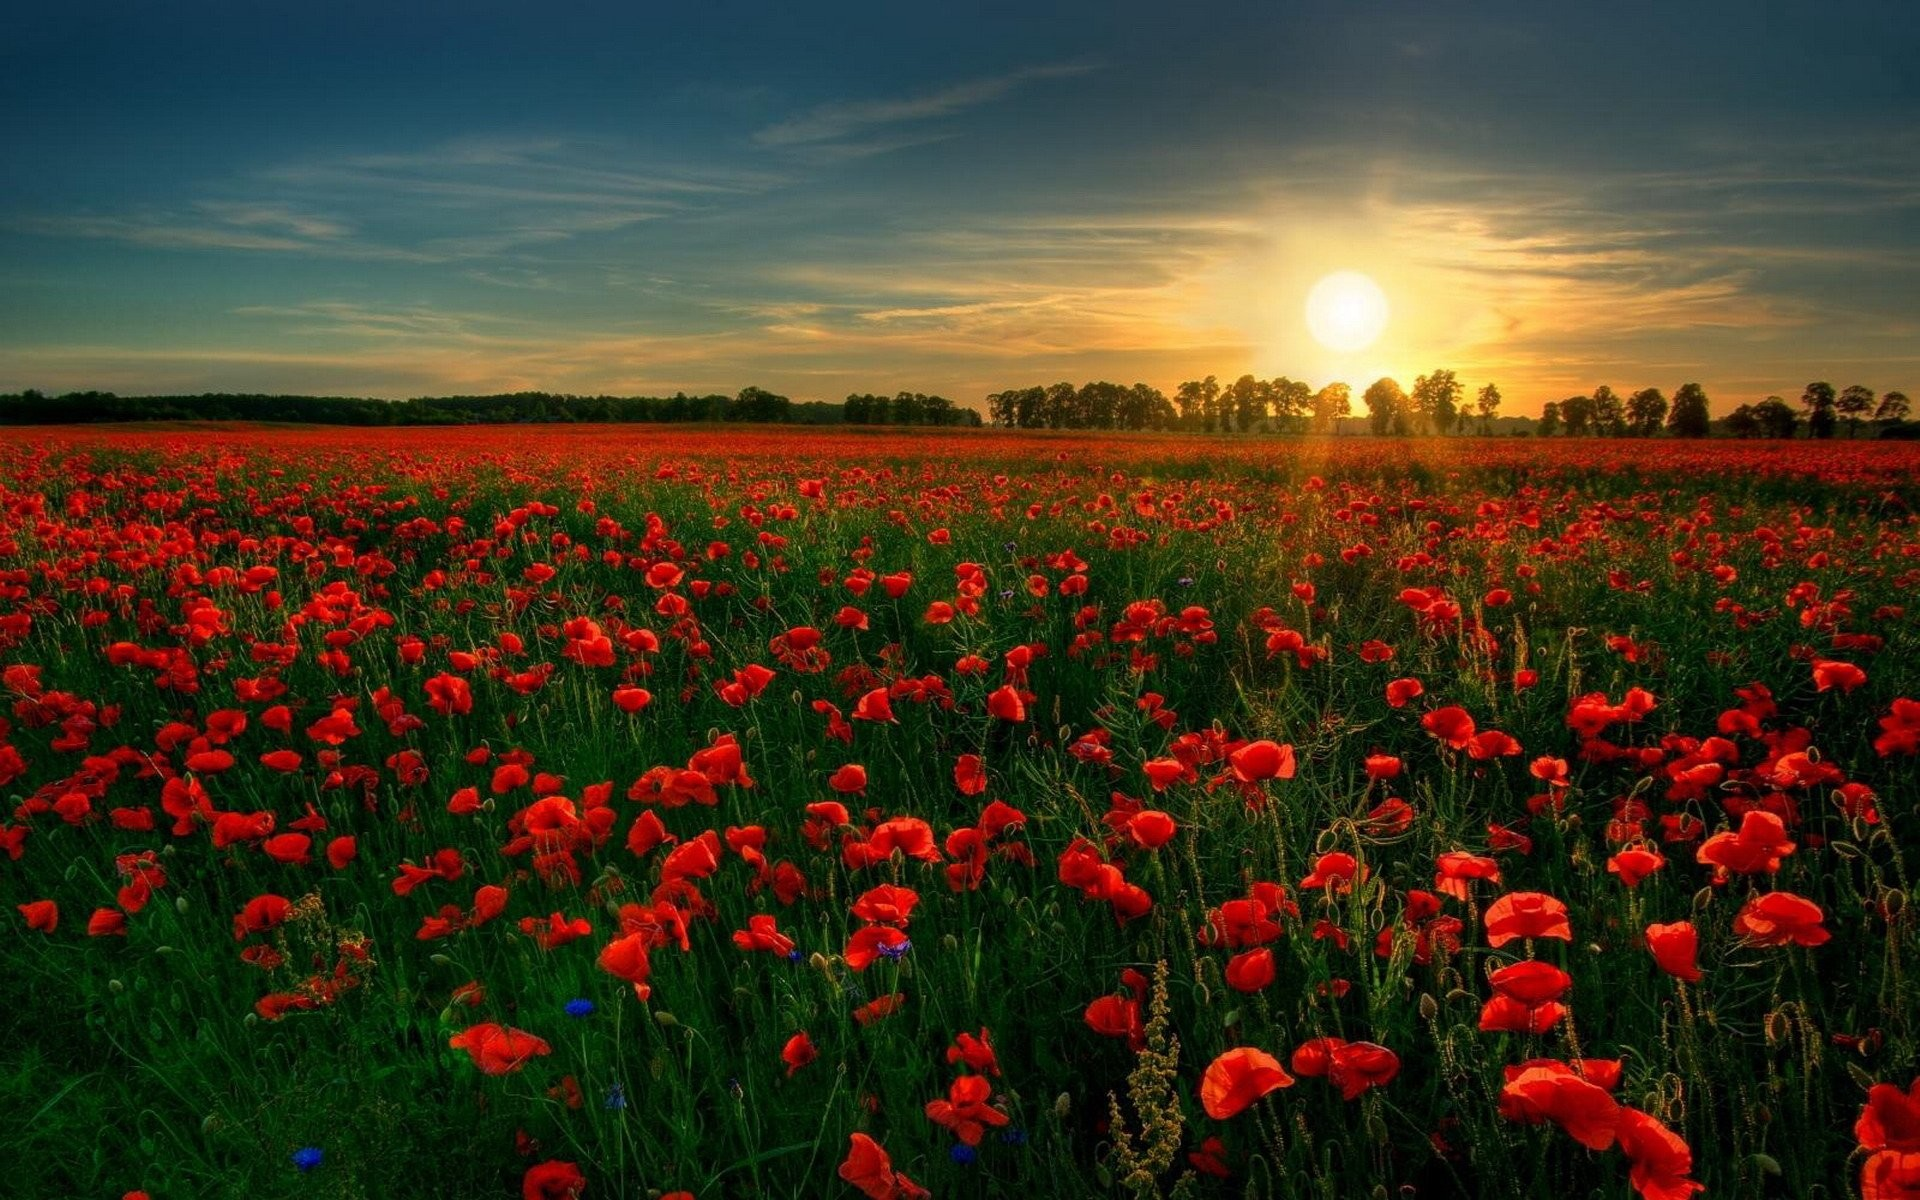 1920x1200 HD Wallpaper | Background Image ID:109552.  Earth Poppy